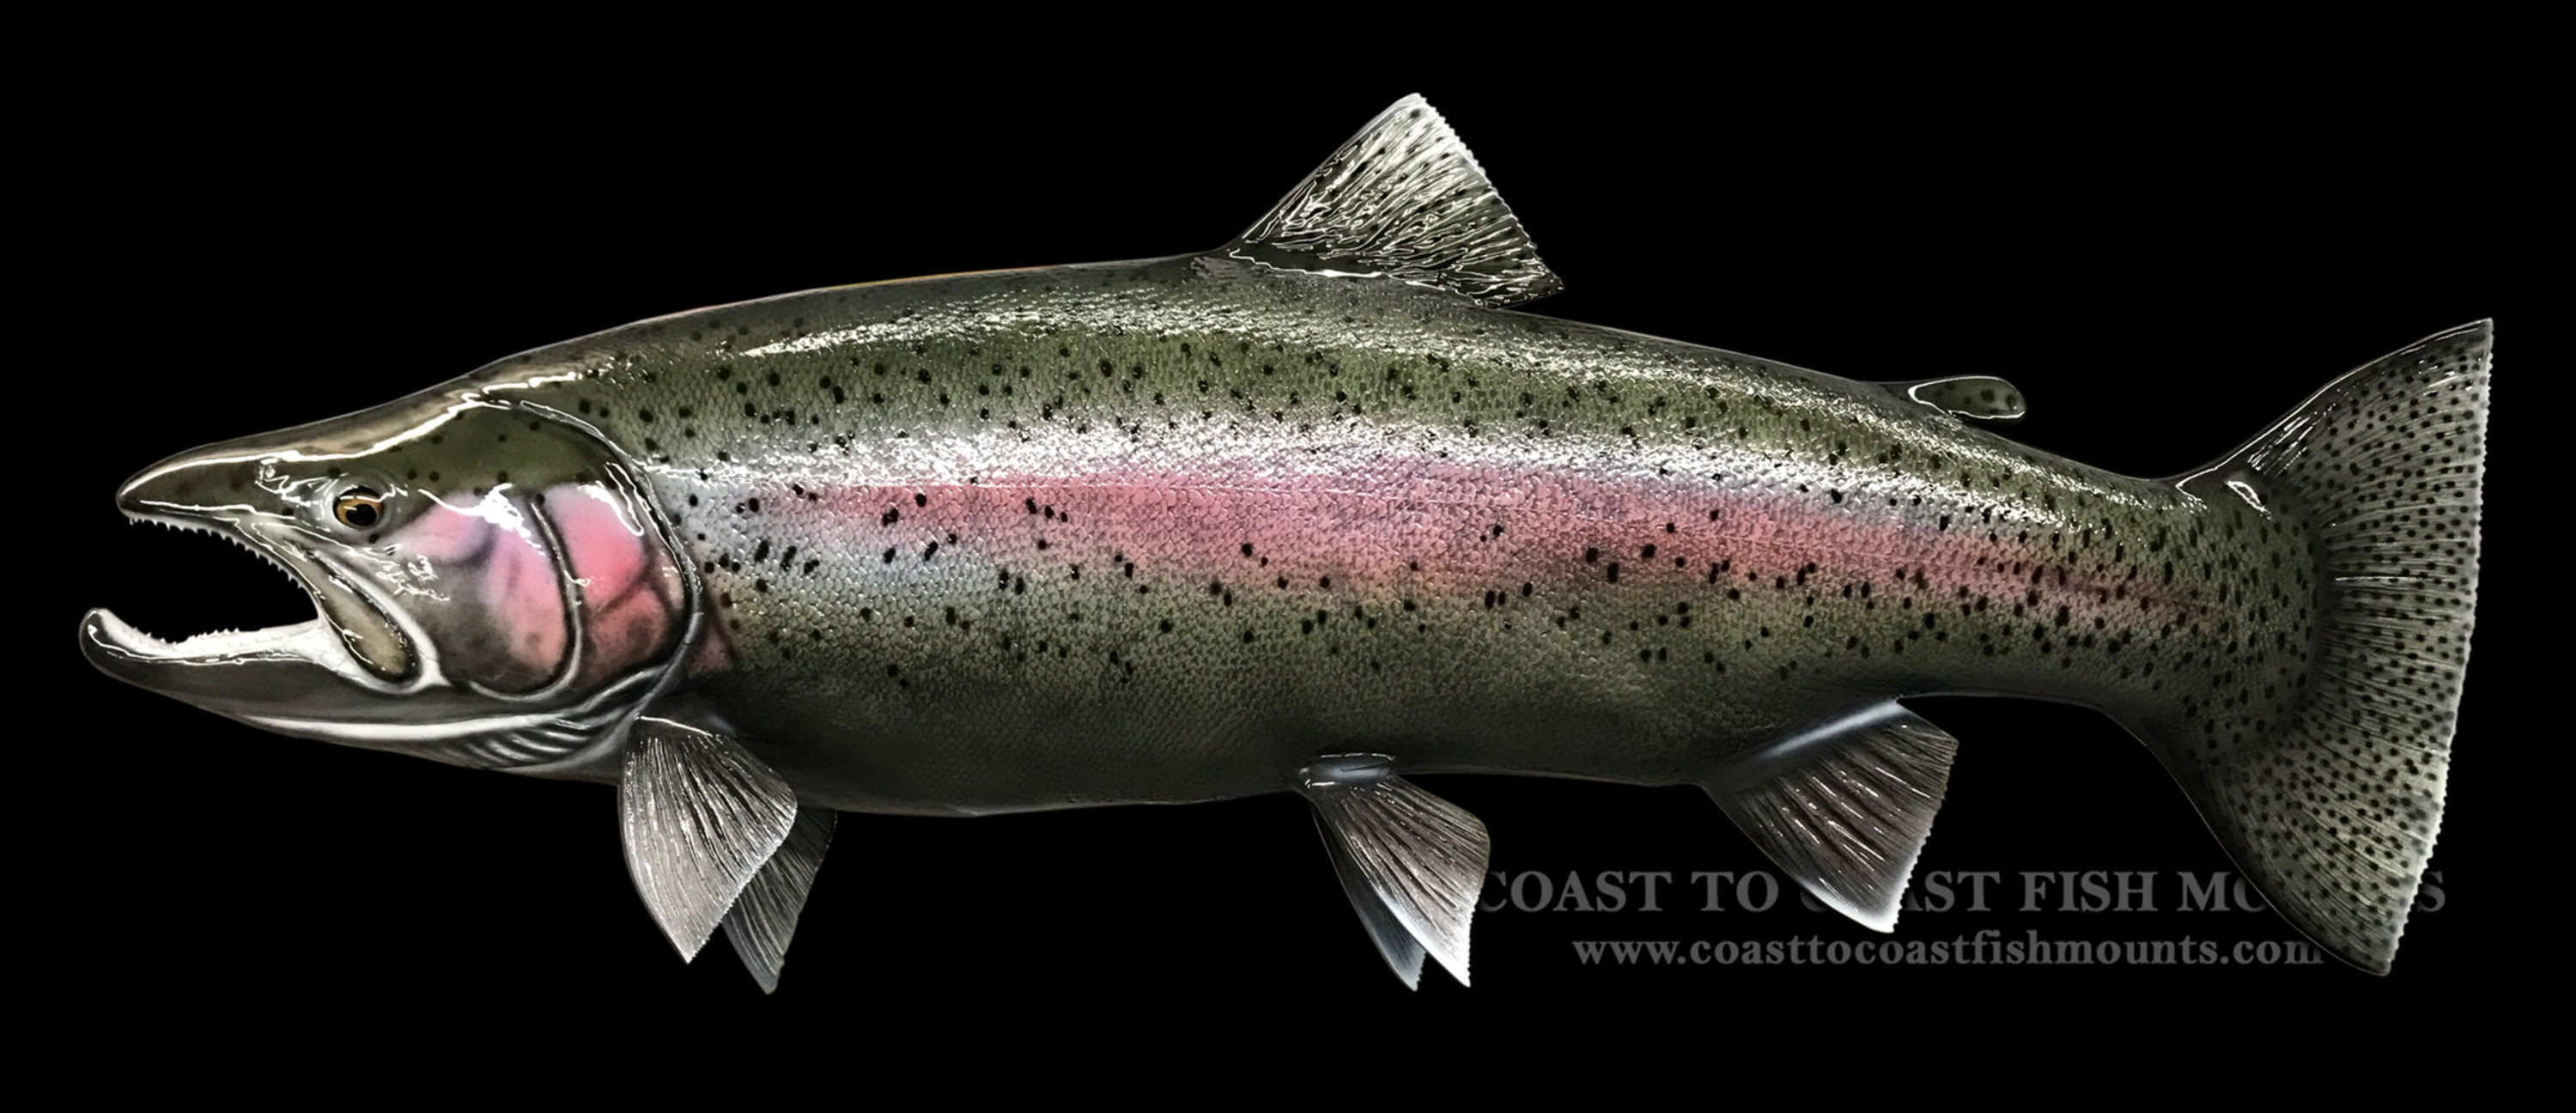 Rainbow steelhead trout fish mount and fish replicas for How to fish for rainbow trout